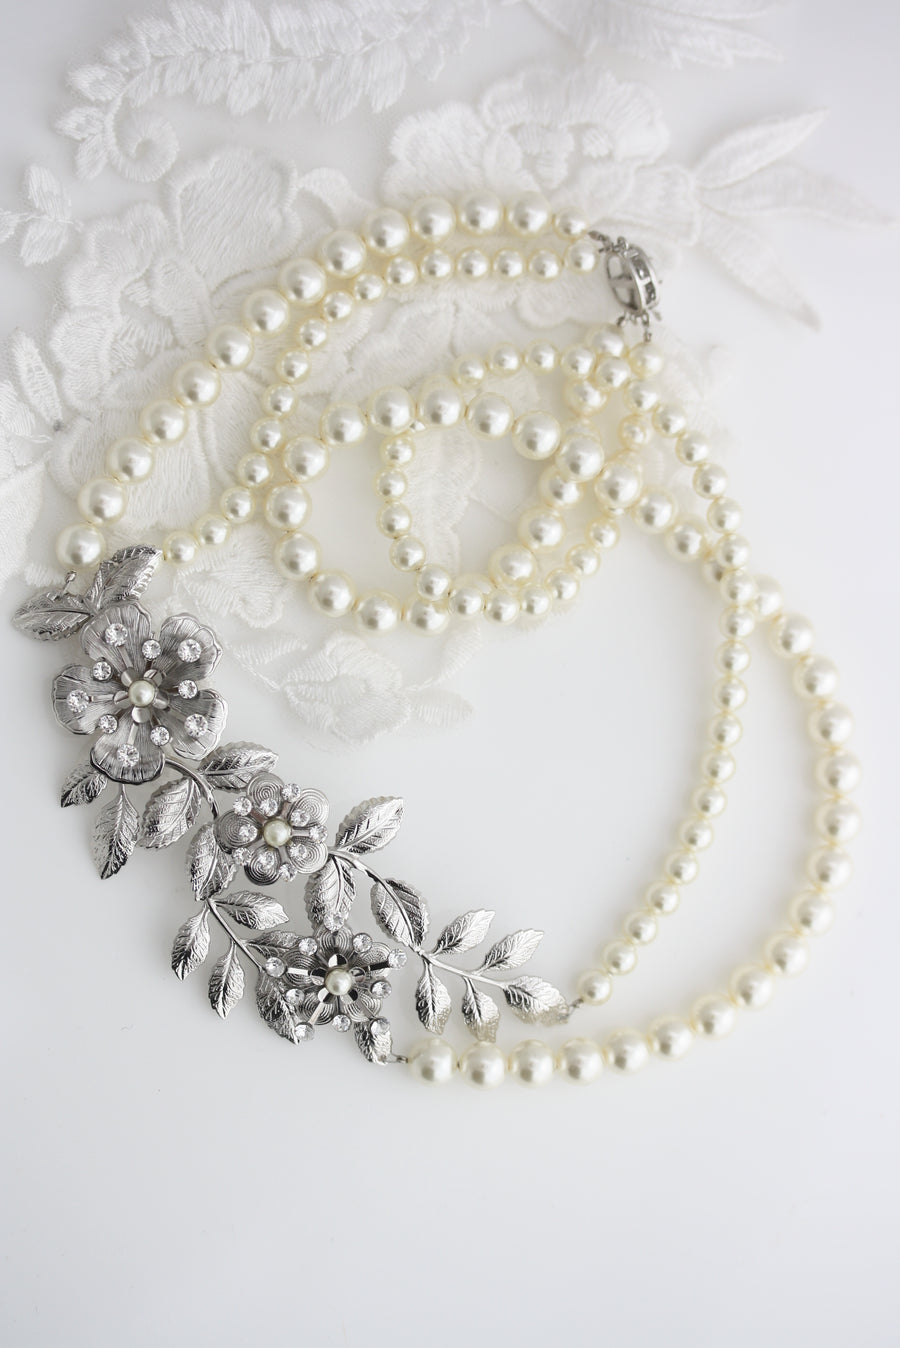 Lisse Pearl Necklace - Lulu Splendor